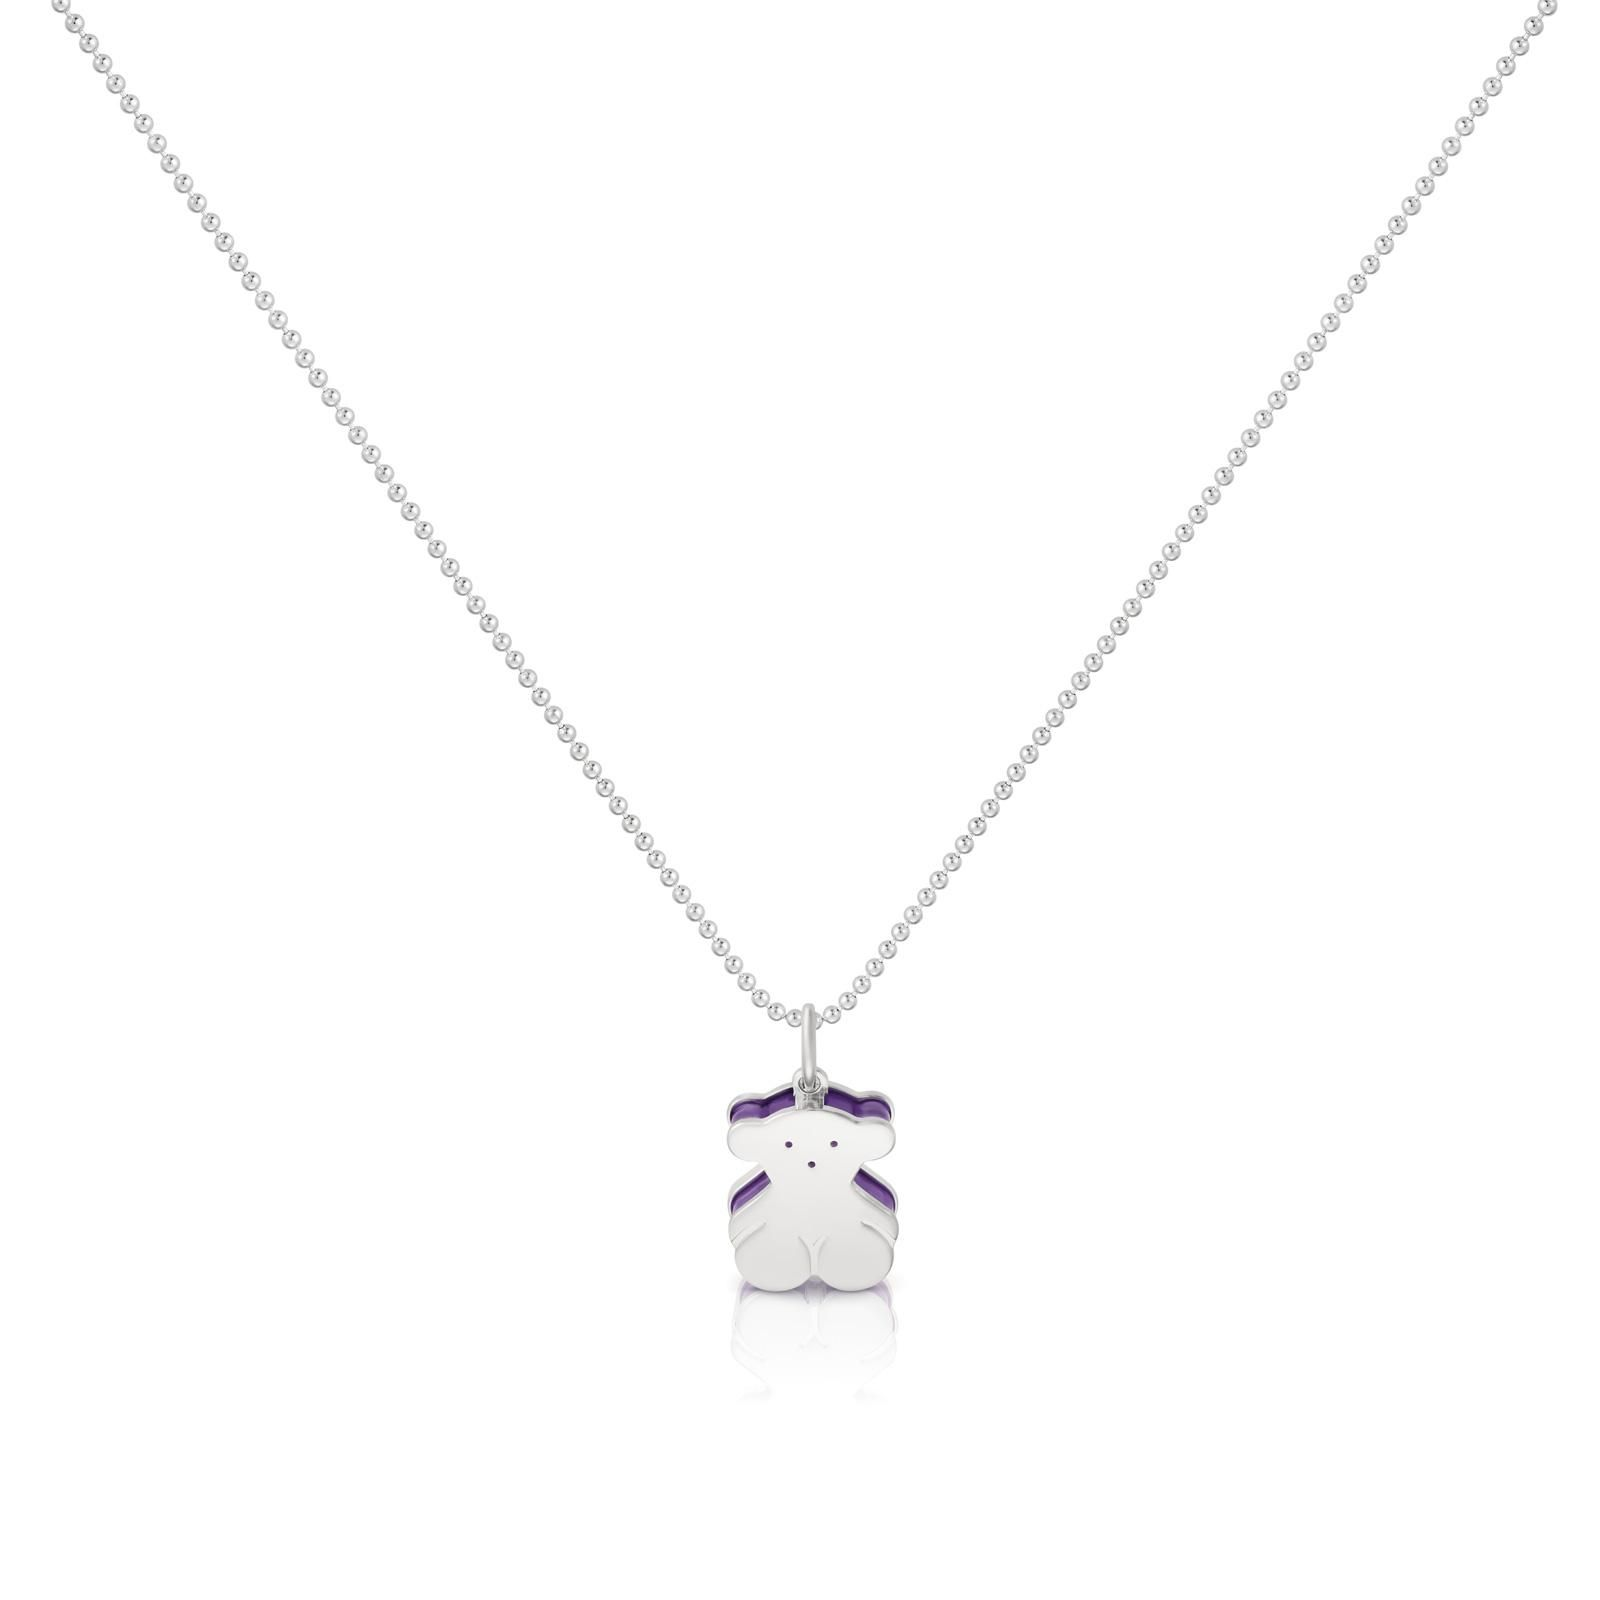 TOUS Silver Sweet Dolls Necklace with small motif